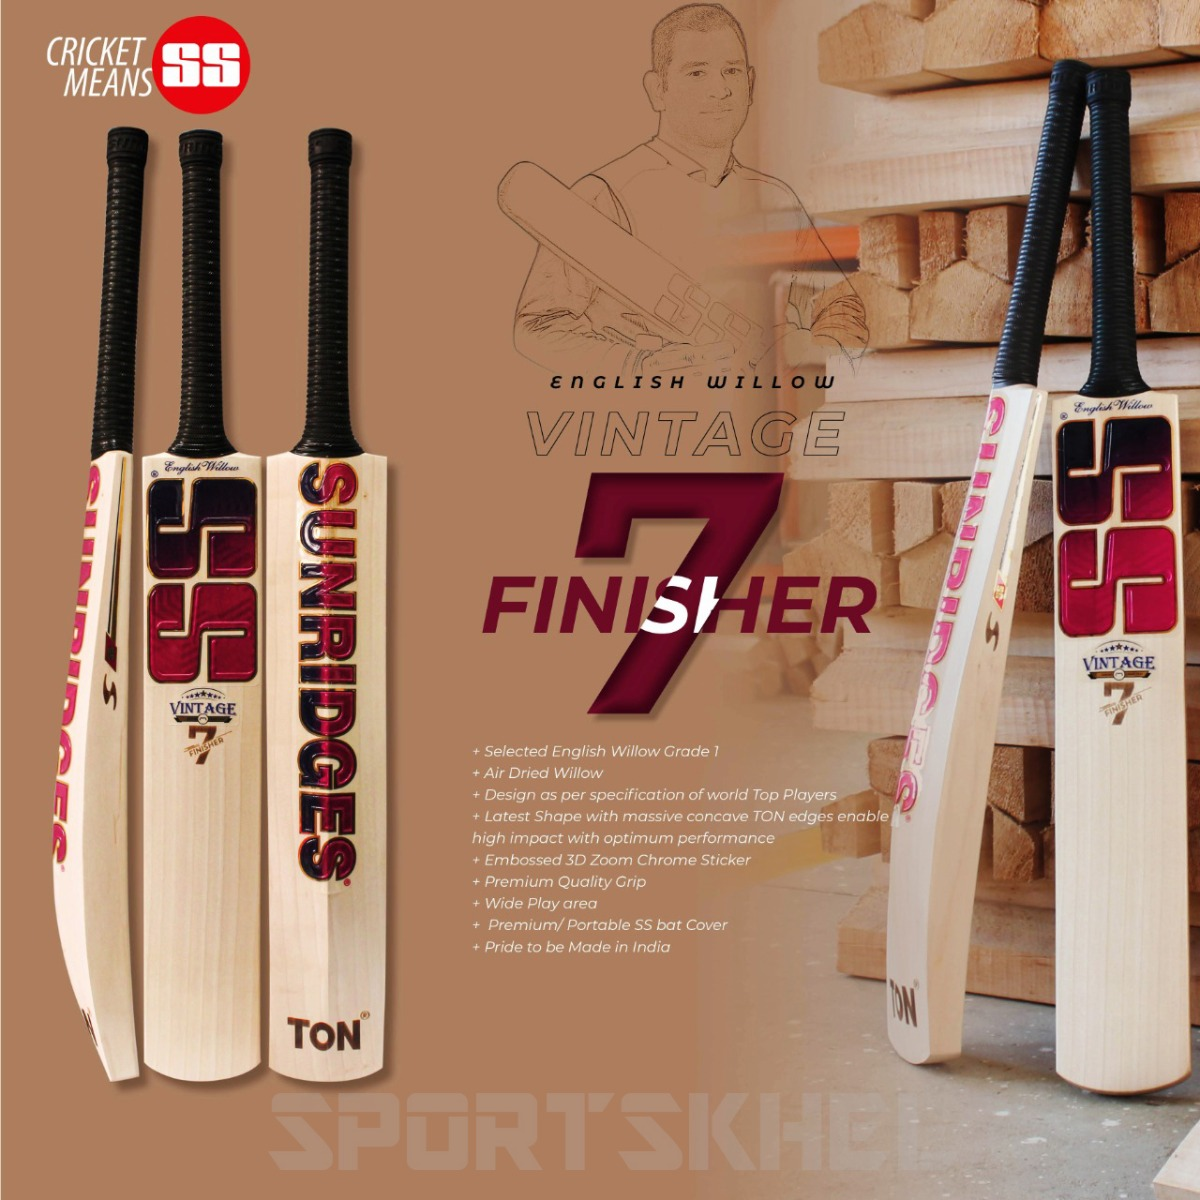 SS Vintage 7 Finisher English Willow Bat Features